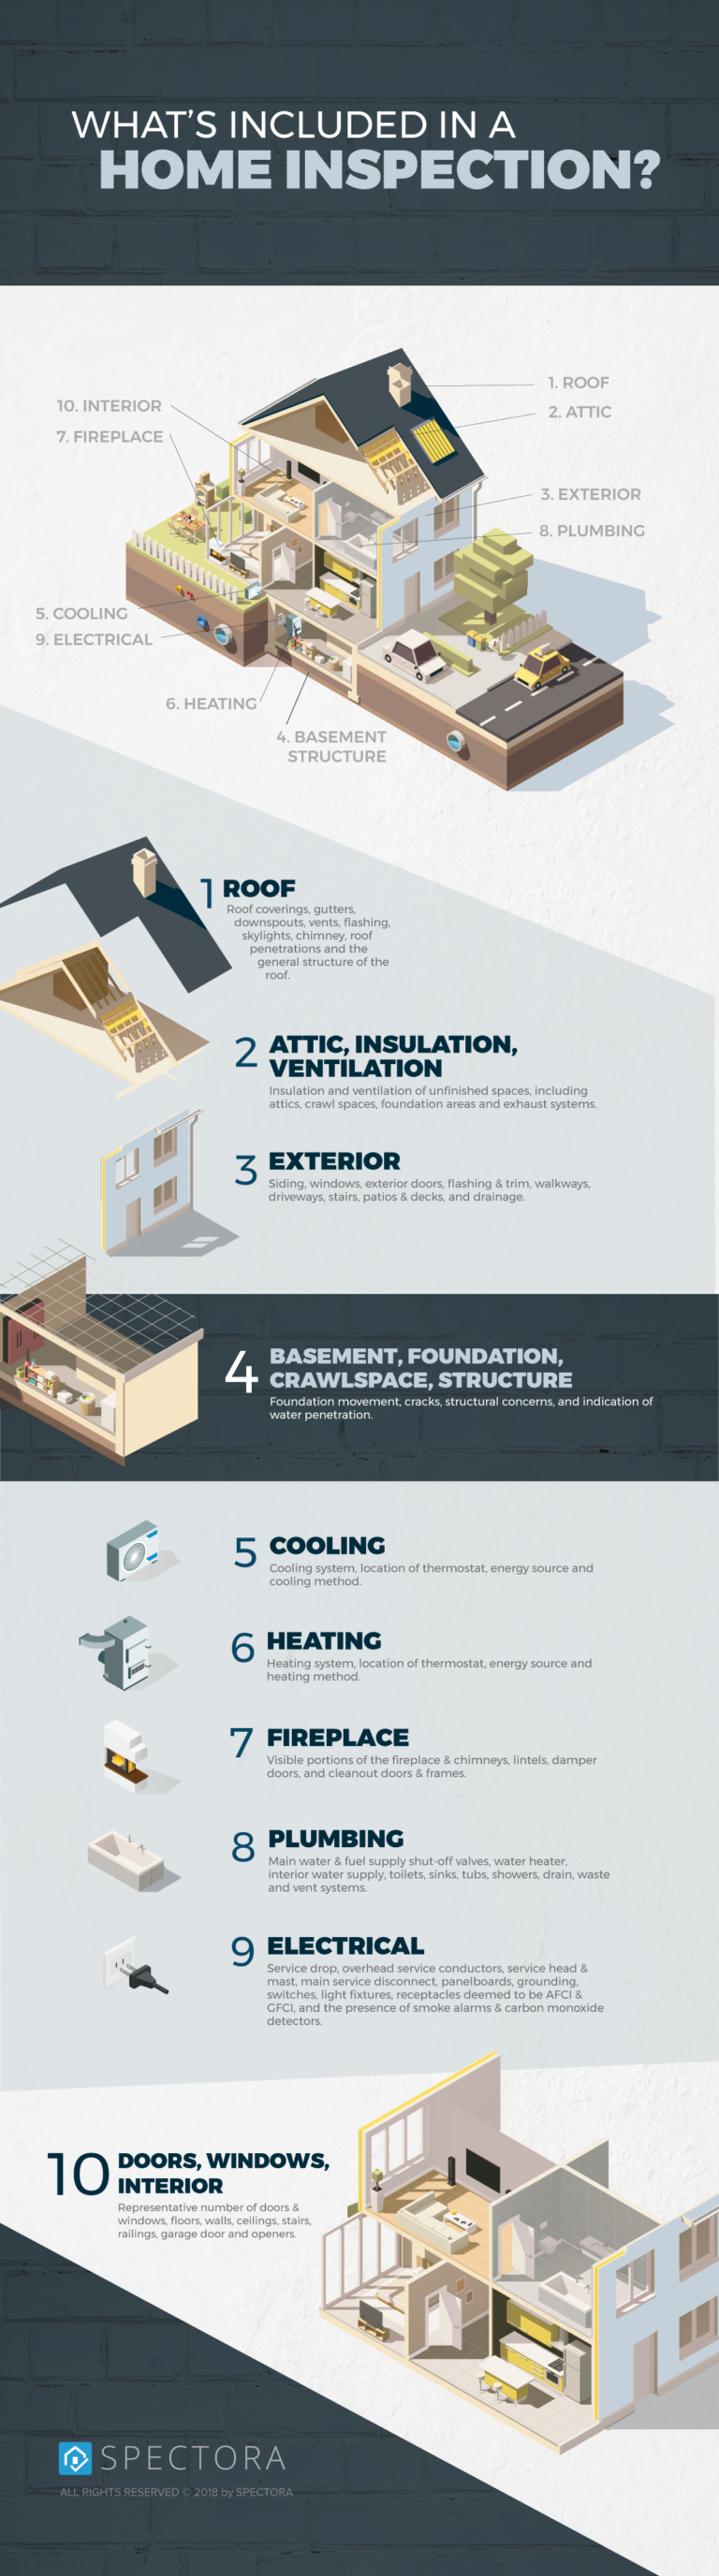 What Is Included In A Home Inspection Near Me?